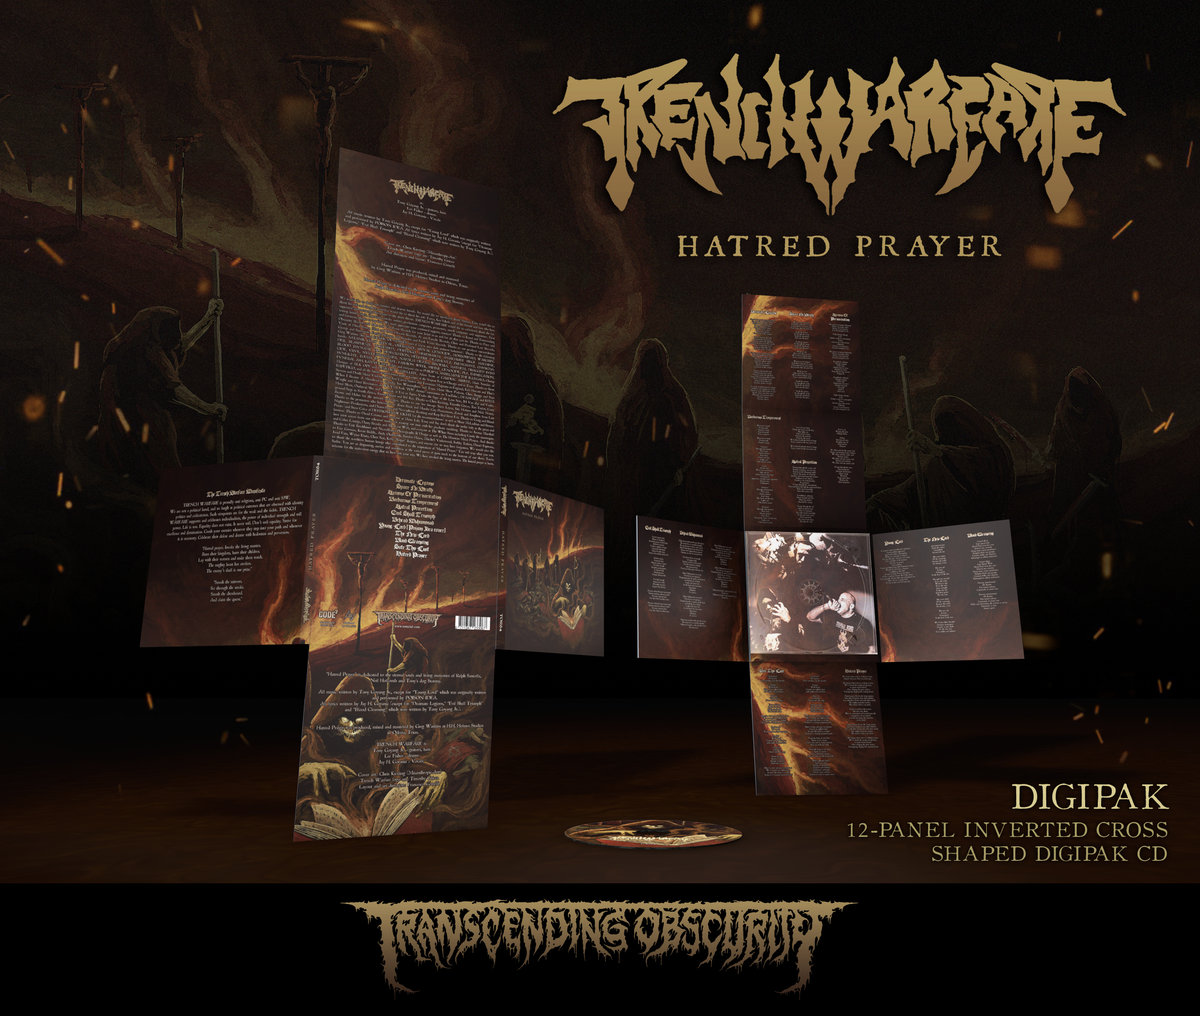 TRENCH WARFARE (US) - 'Hatred Warfare' Limited Edition 12-panel Inverted Cross-shaped Digipak CD